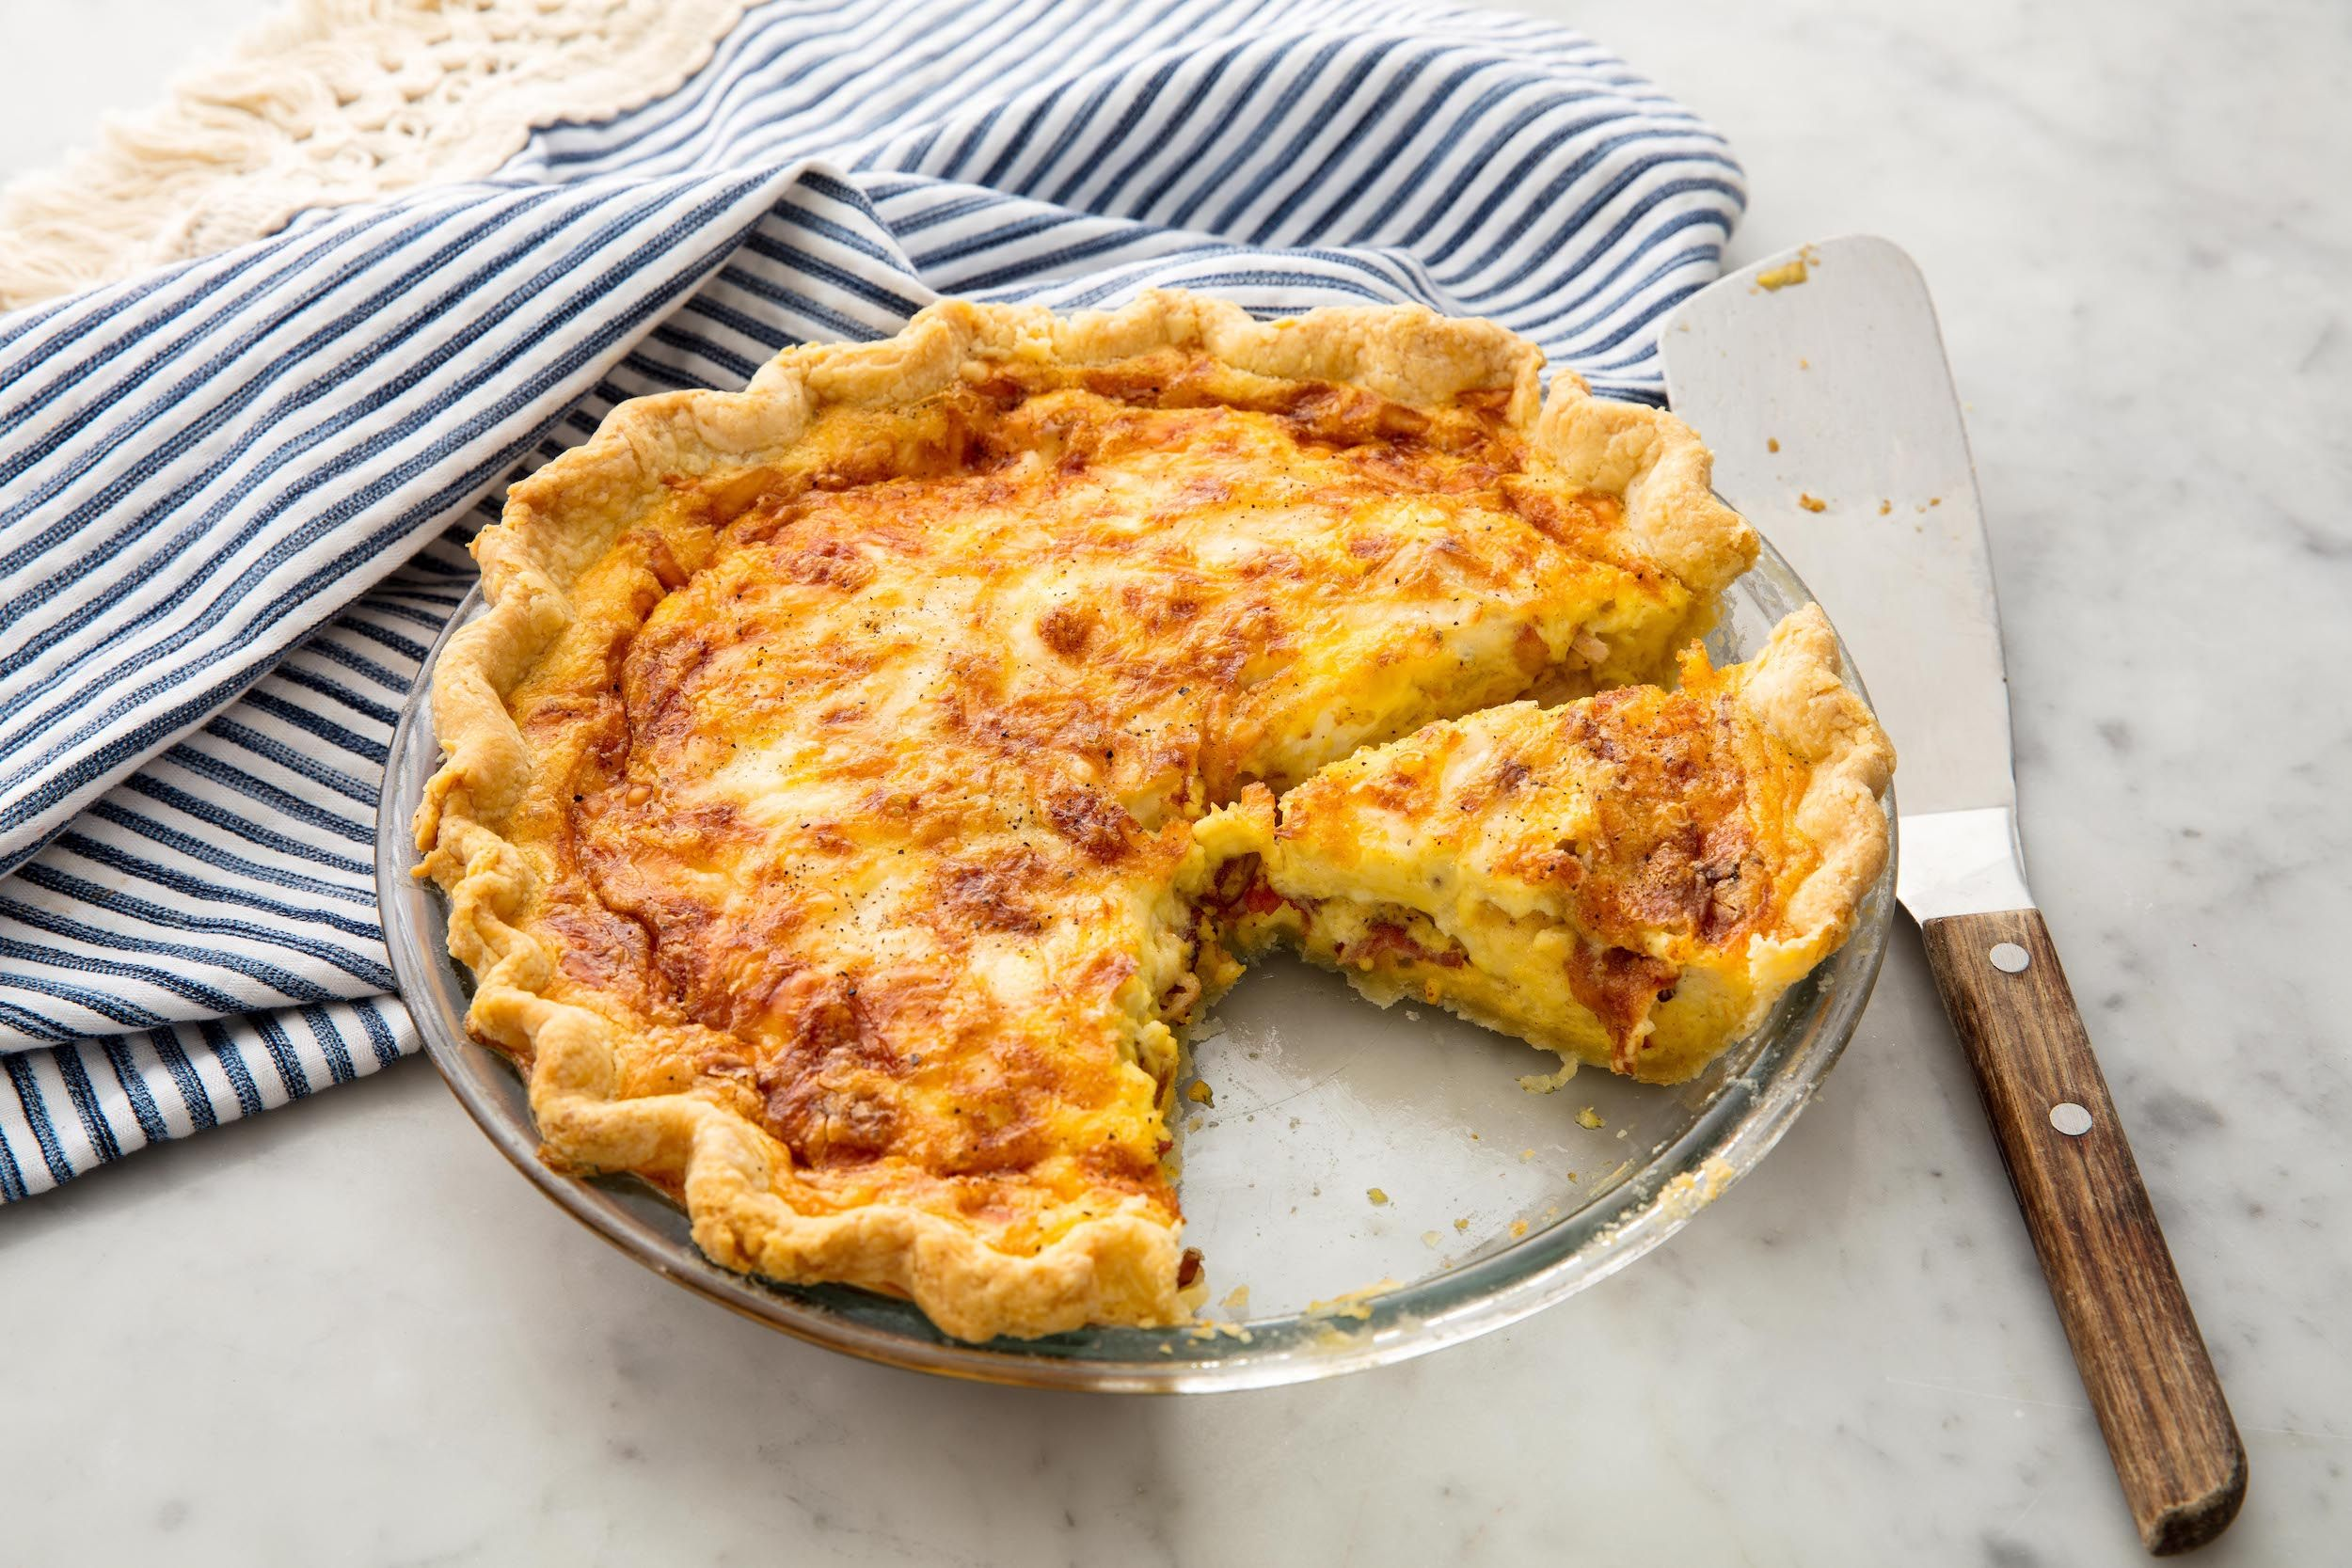 Can I make a quiche pie at home?